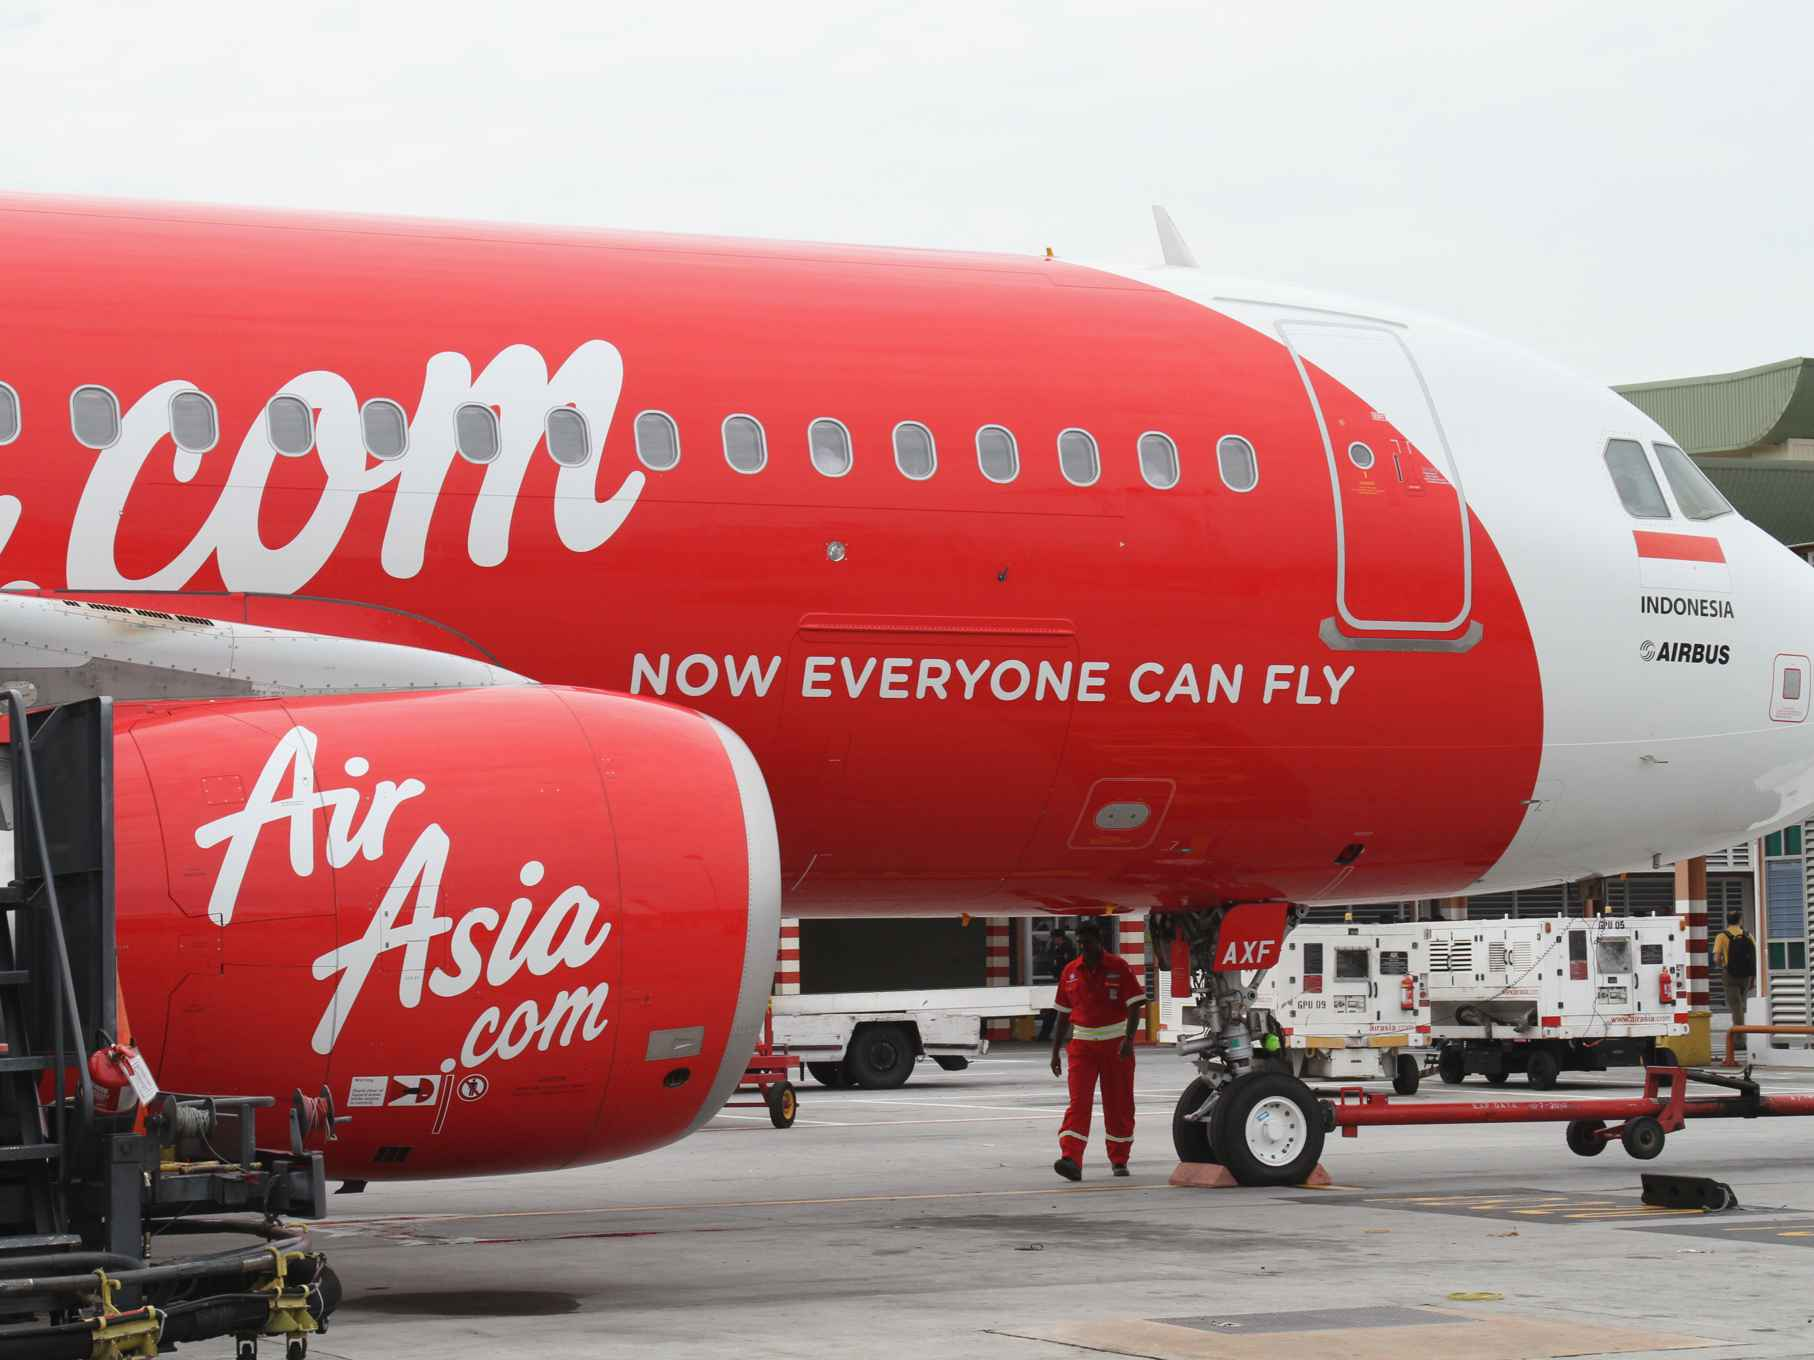 conclusion of air asia Ultimately, effective governance is essential to dealing with food insecurity in developing countries in asia.